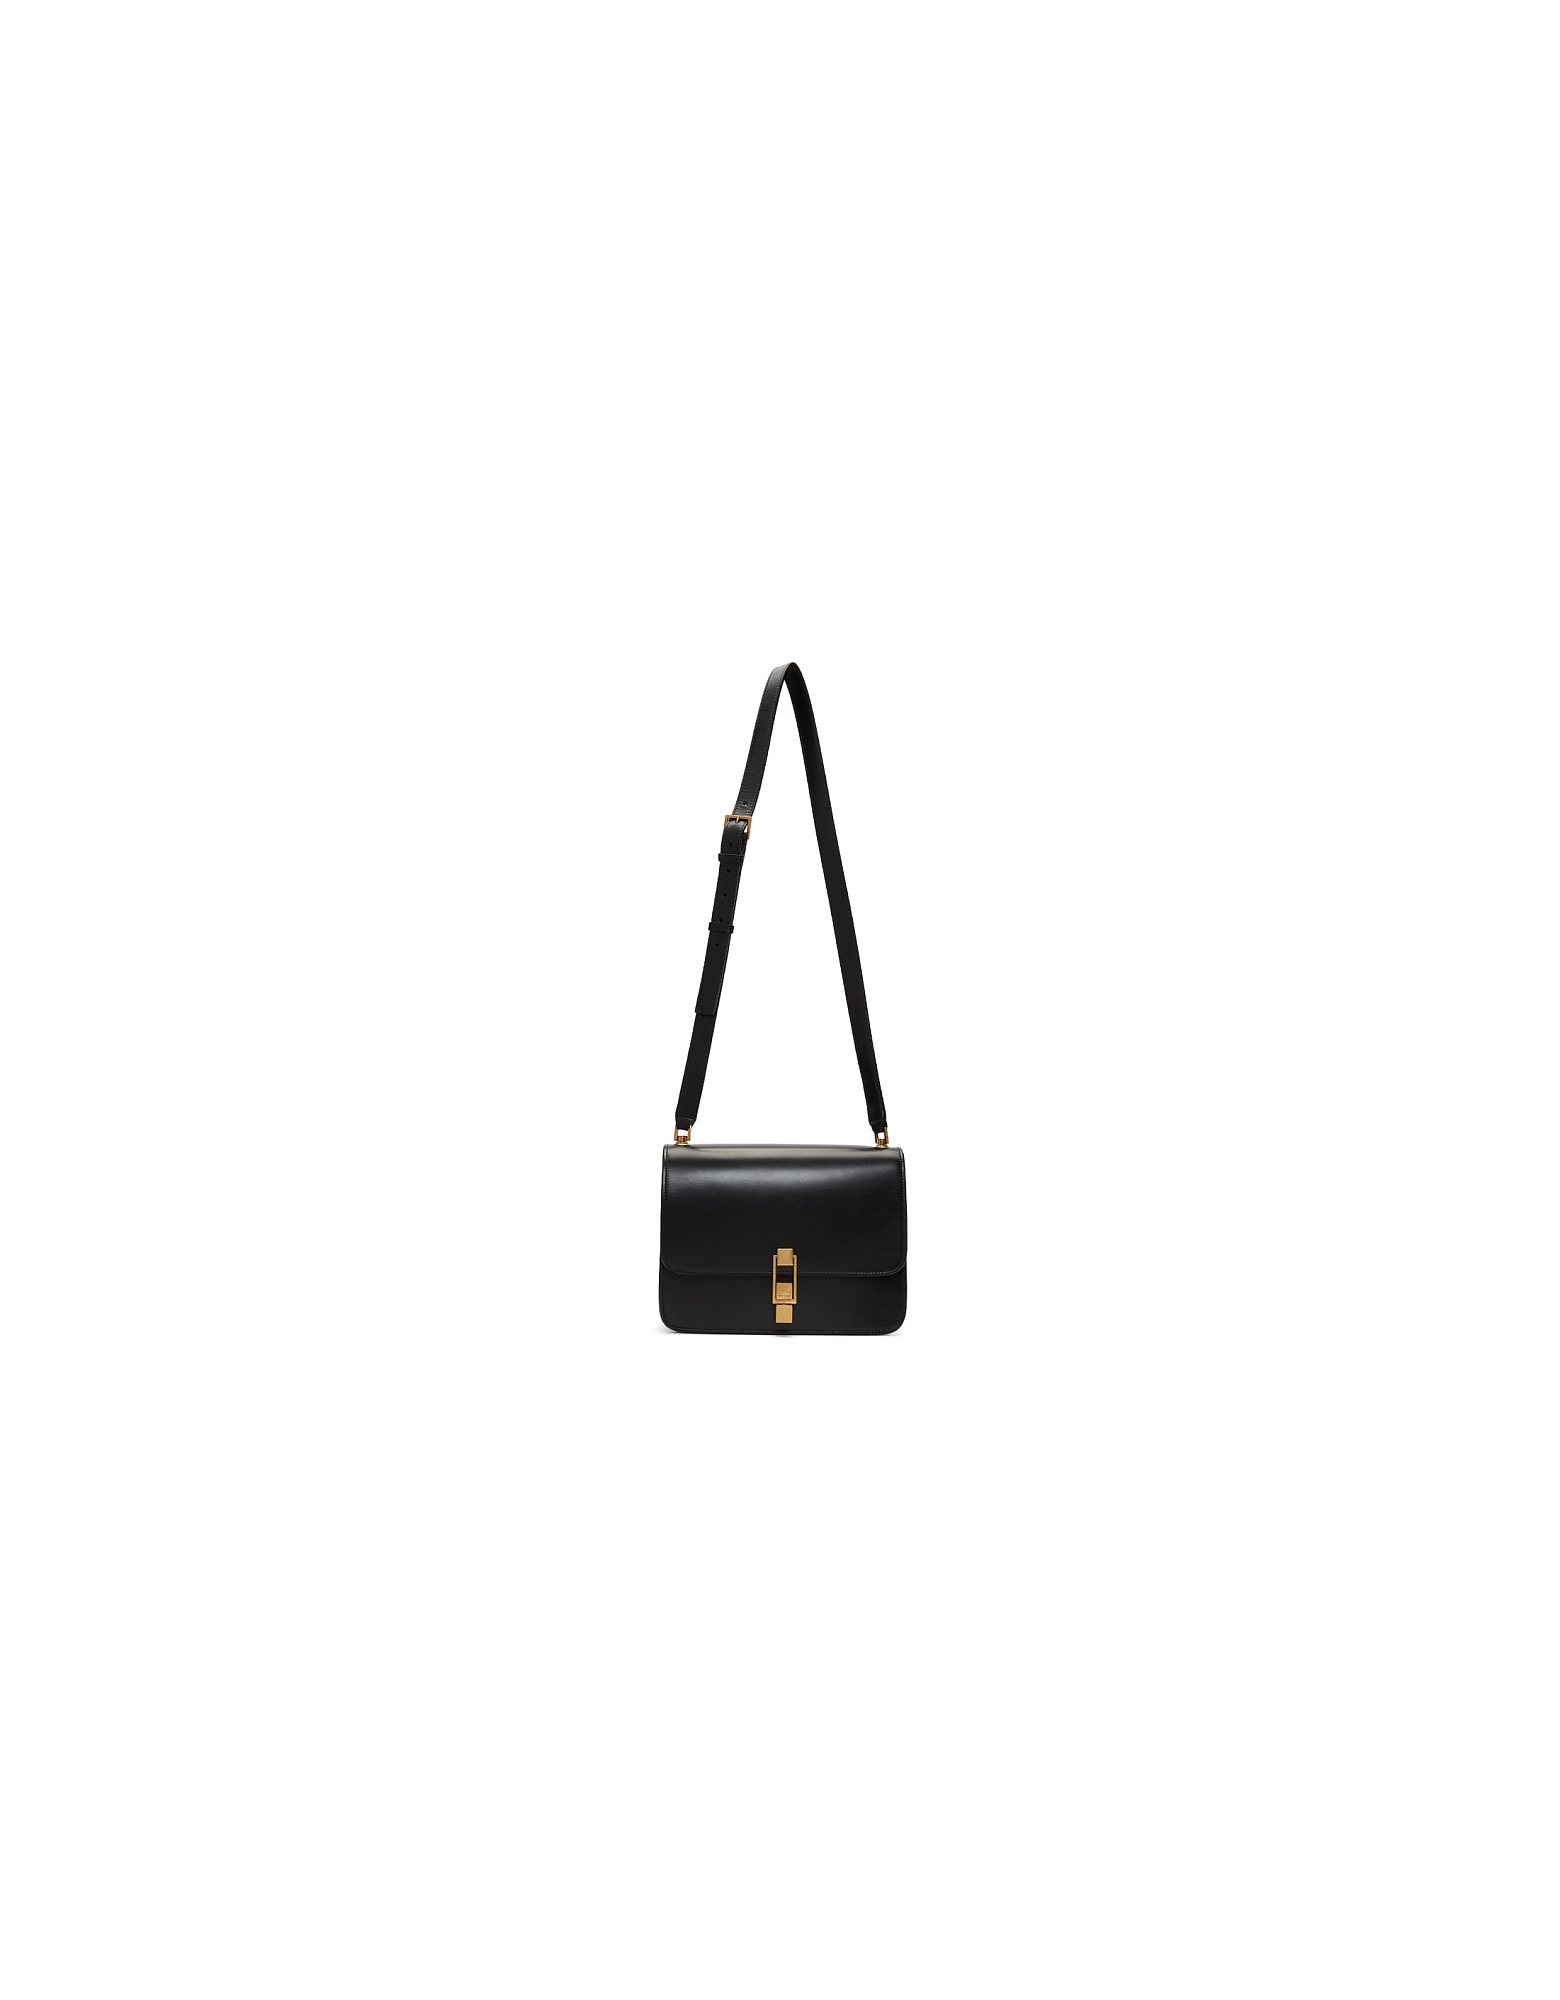 Saint Laurent Designer Handbags, Black Carre Satchel Bag